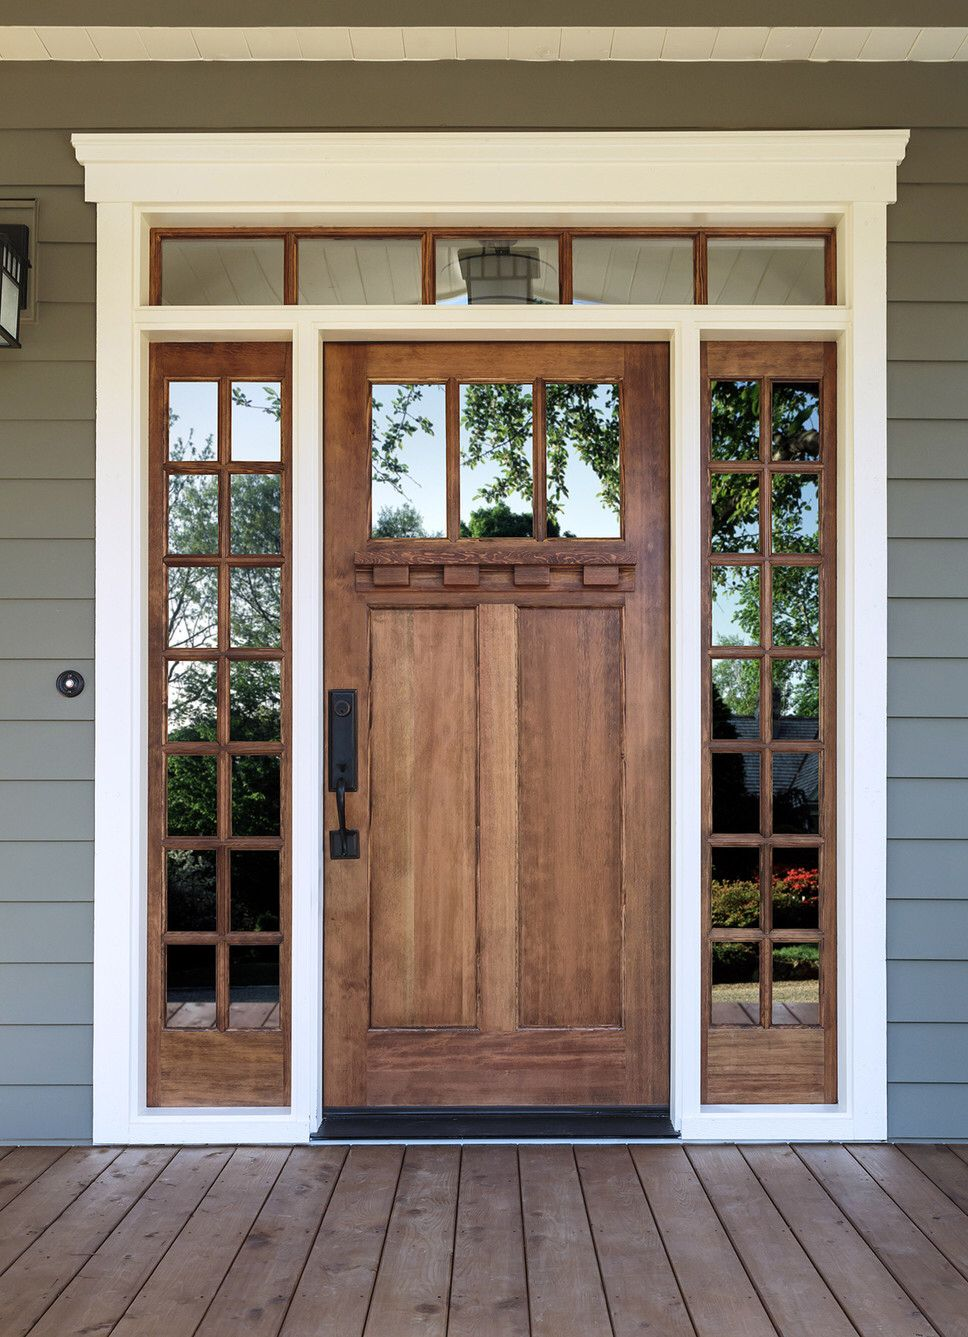 Business Design A House And Window: House Exterior, Modern Farmhouse Exterior, Farmhouse Exterior